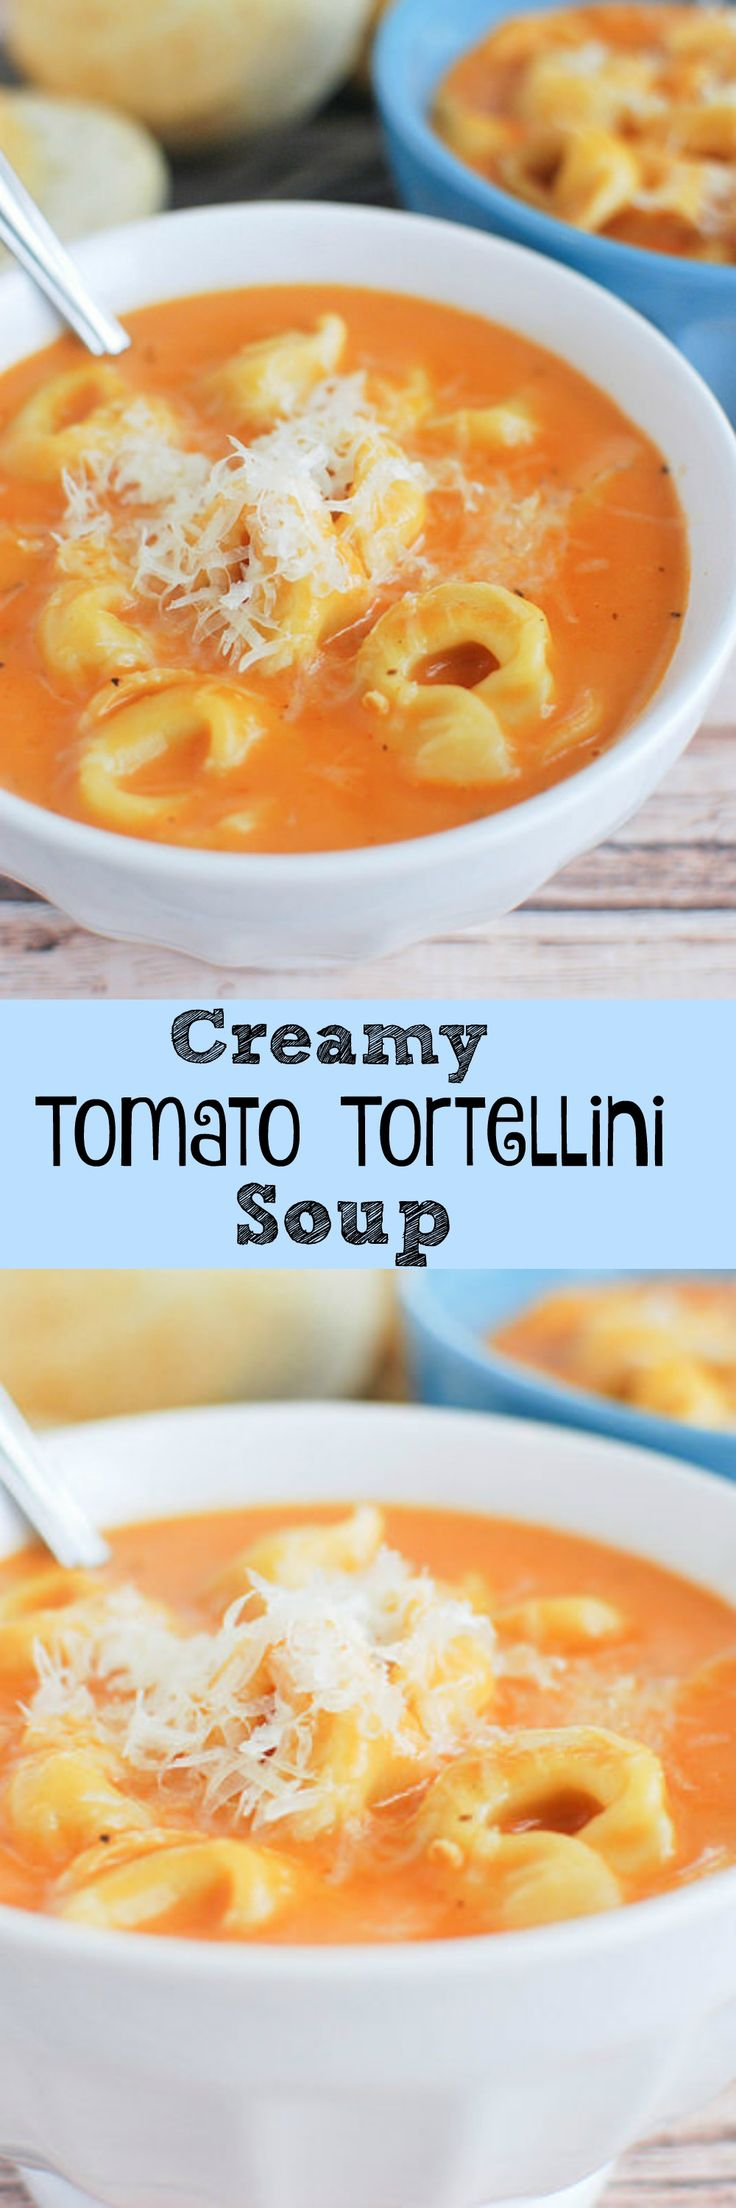 Creamy Tomato Tortellini Soup - yummy meatless meal that takes minutes to make!